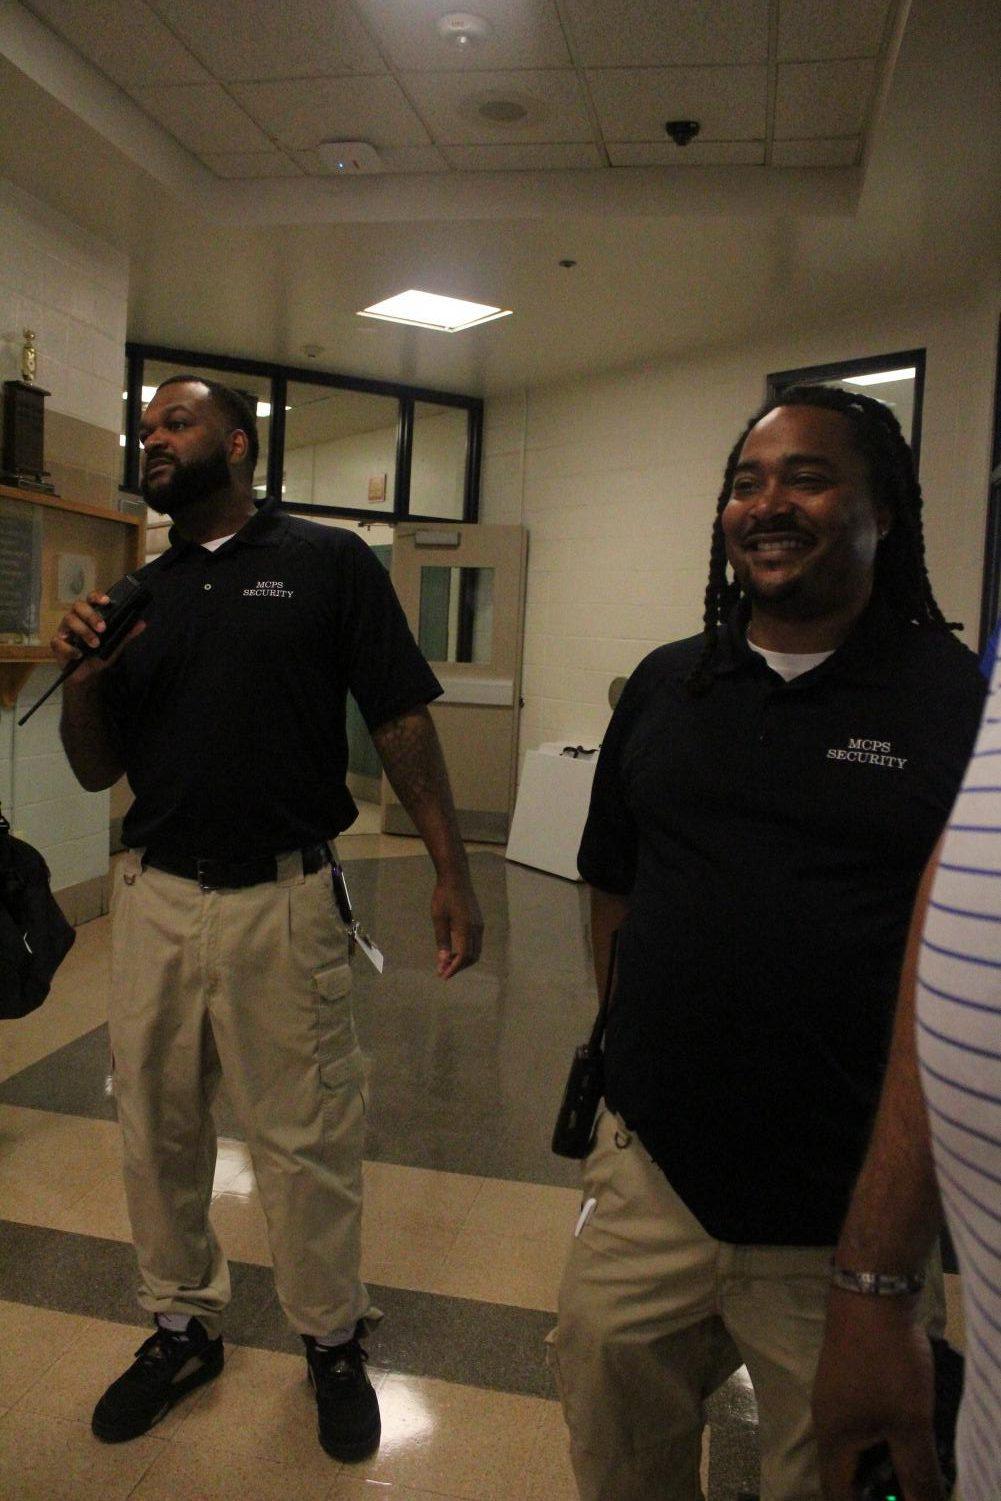 Security+officers+Camonte+Lee+and+Aron+Dorsey+introduce+themselves+to+new+students.